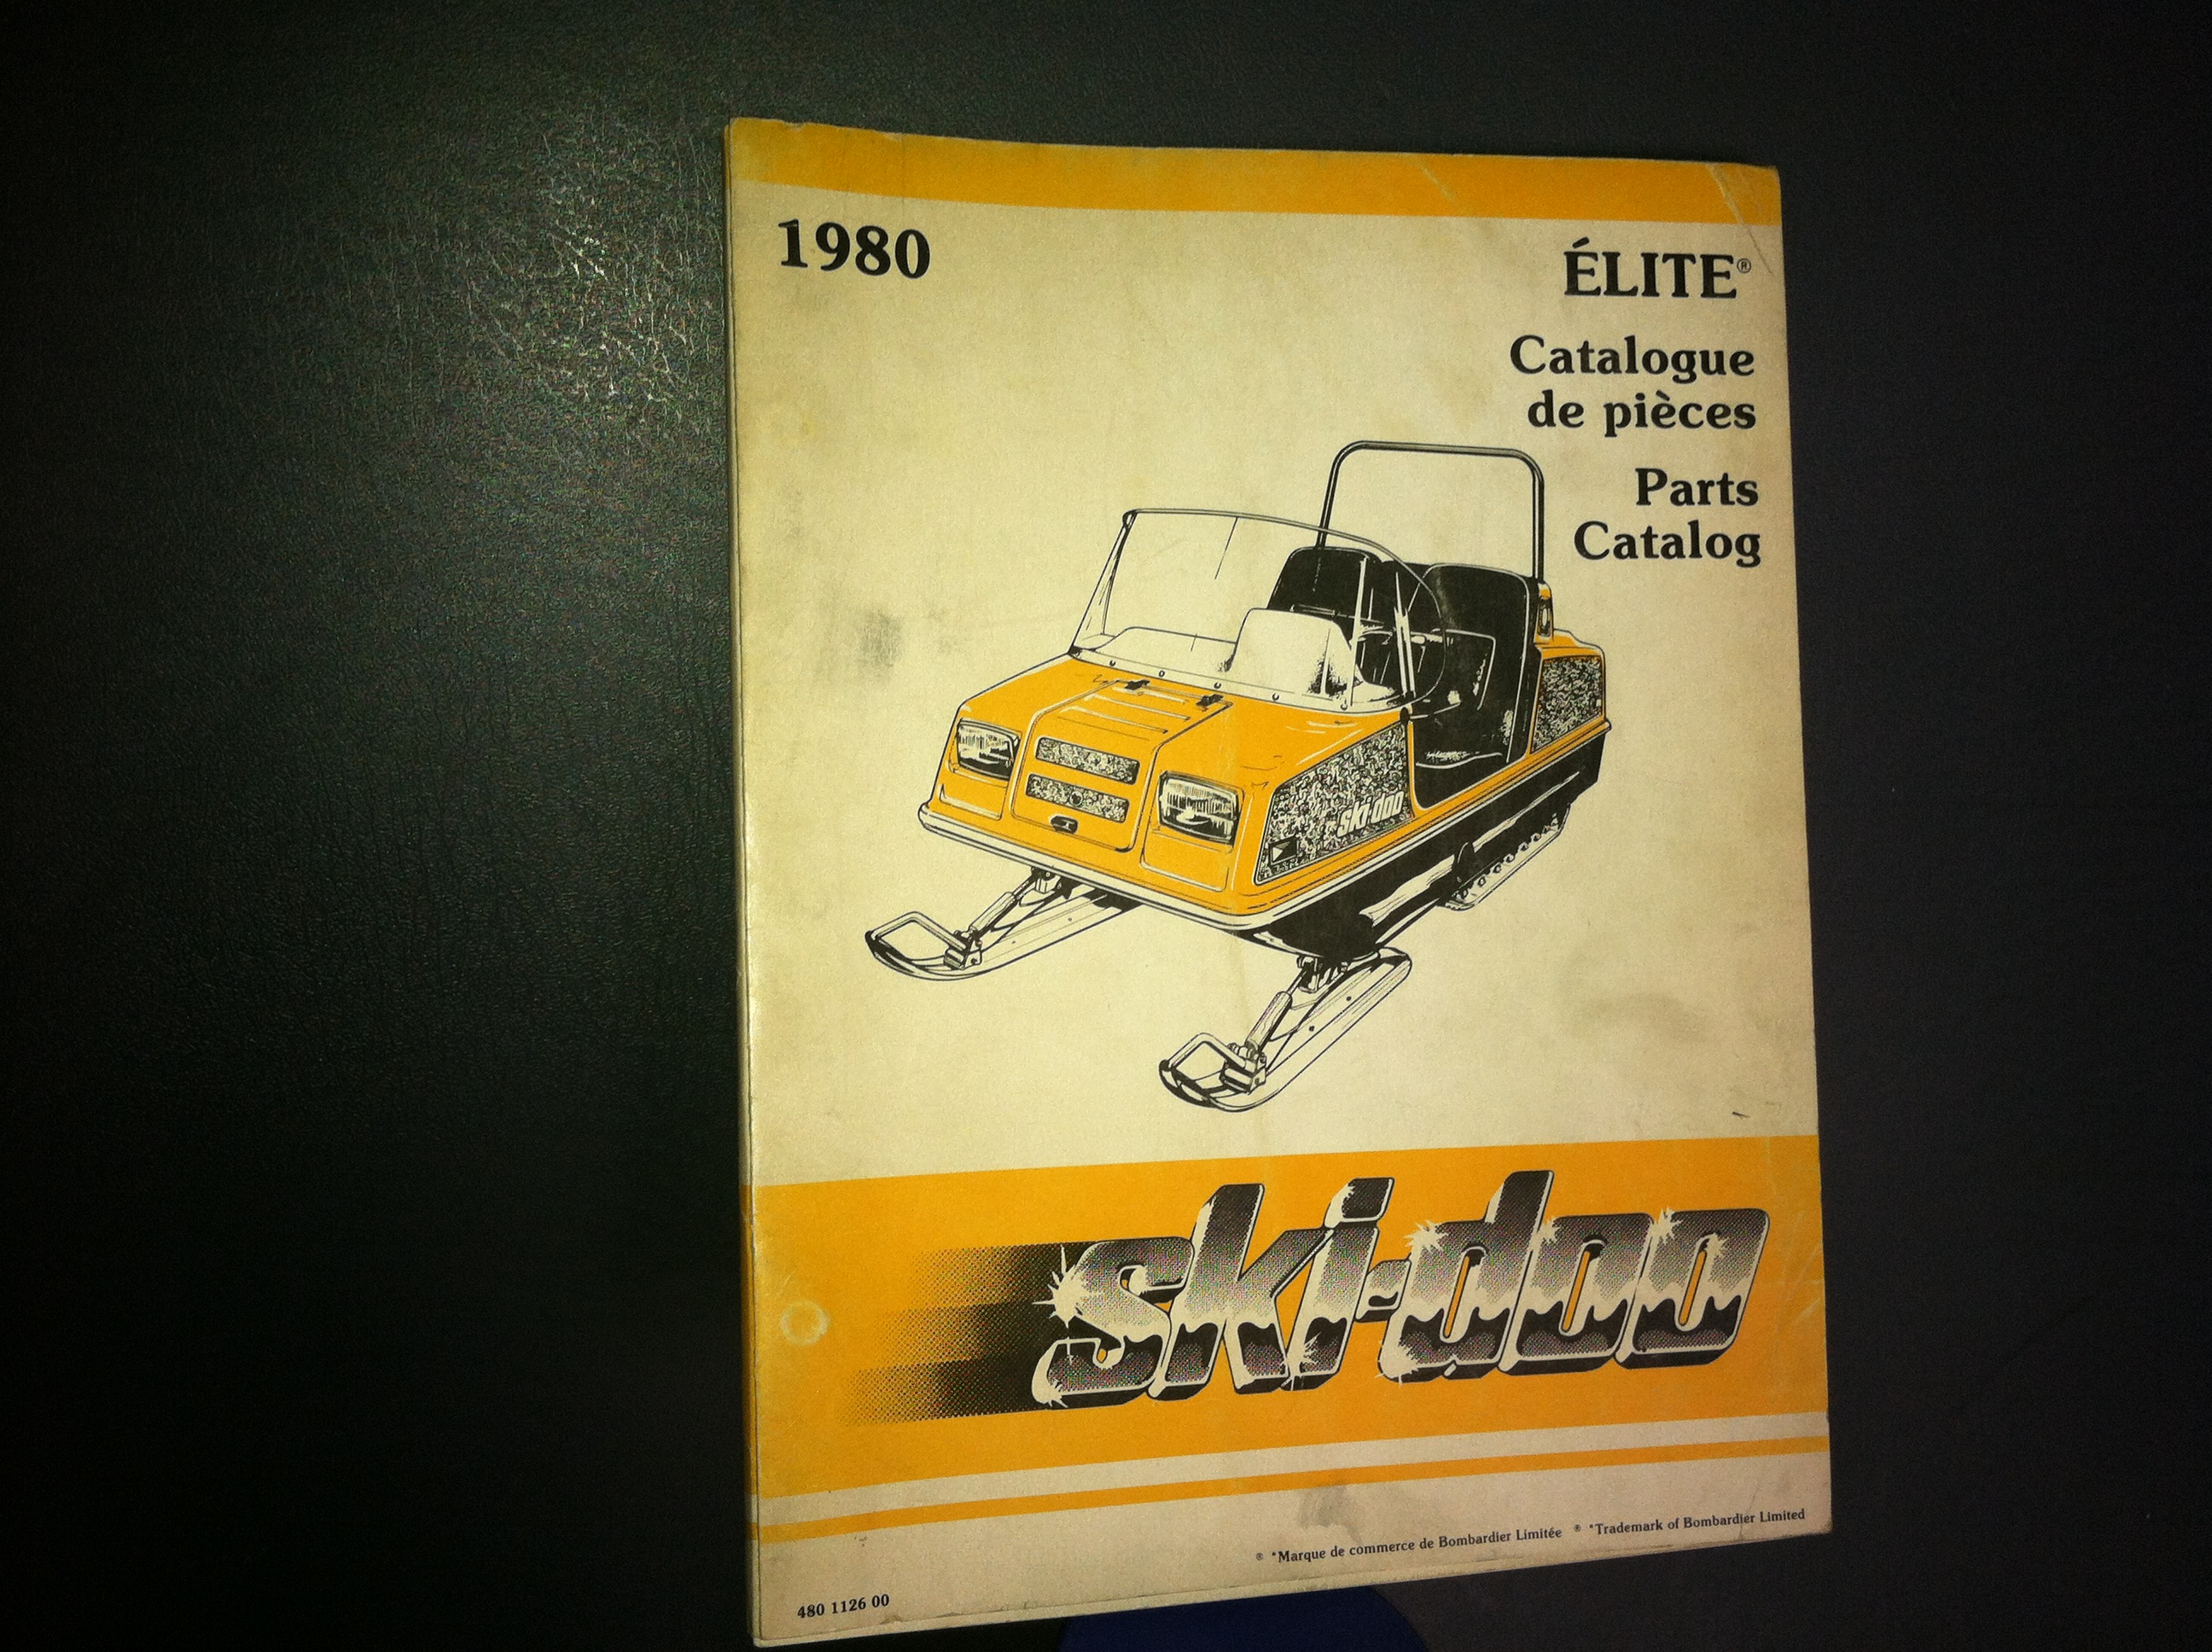 1980 elite parts manual skidoo rotax bombardier snowmobile vintage rh vintagesledpartwarehouse com ski doo manuals free ski doo manuals free